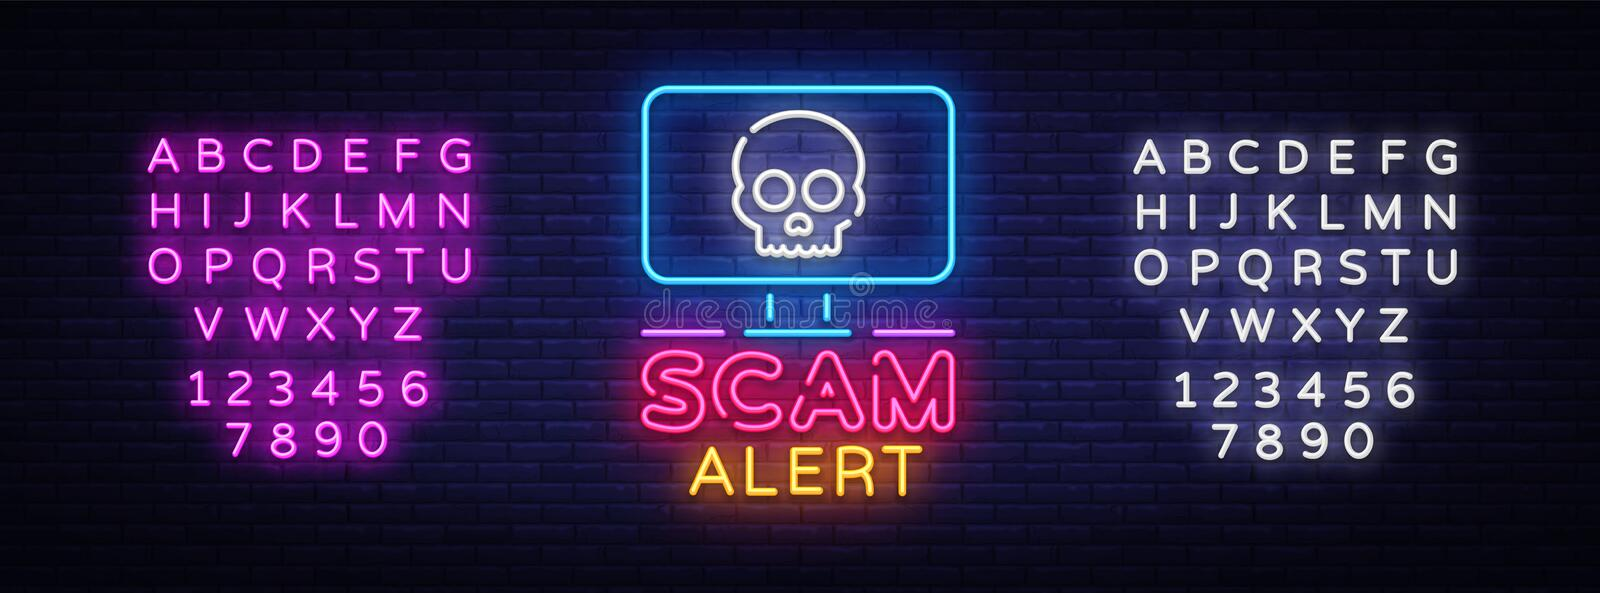 Scam Alert neon sign vector. Scam Alert Design template neon signboard, light banner, neon signboard, nightly bright. Advertising, light inscription. Vector vector illustration